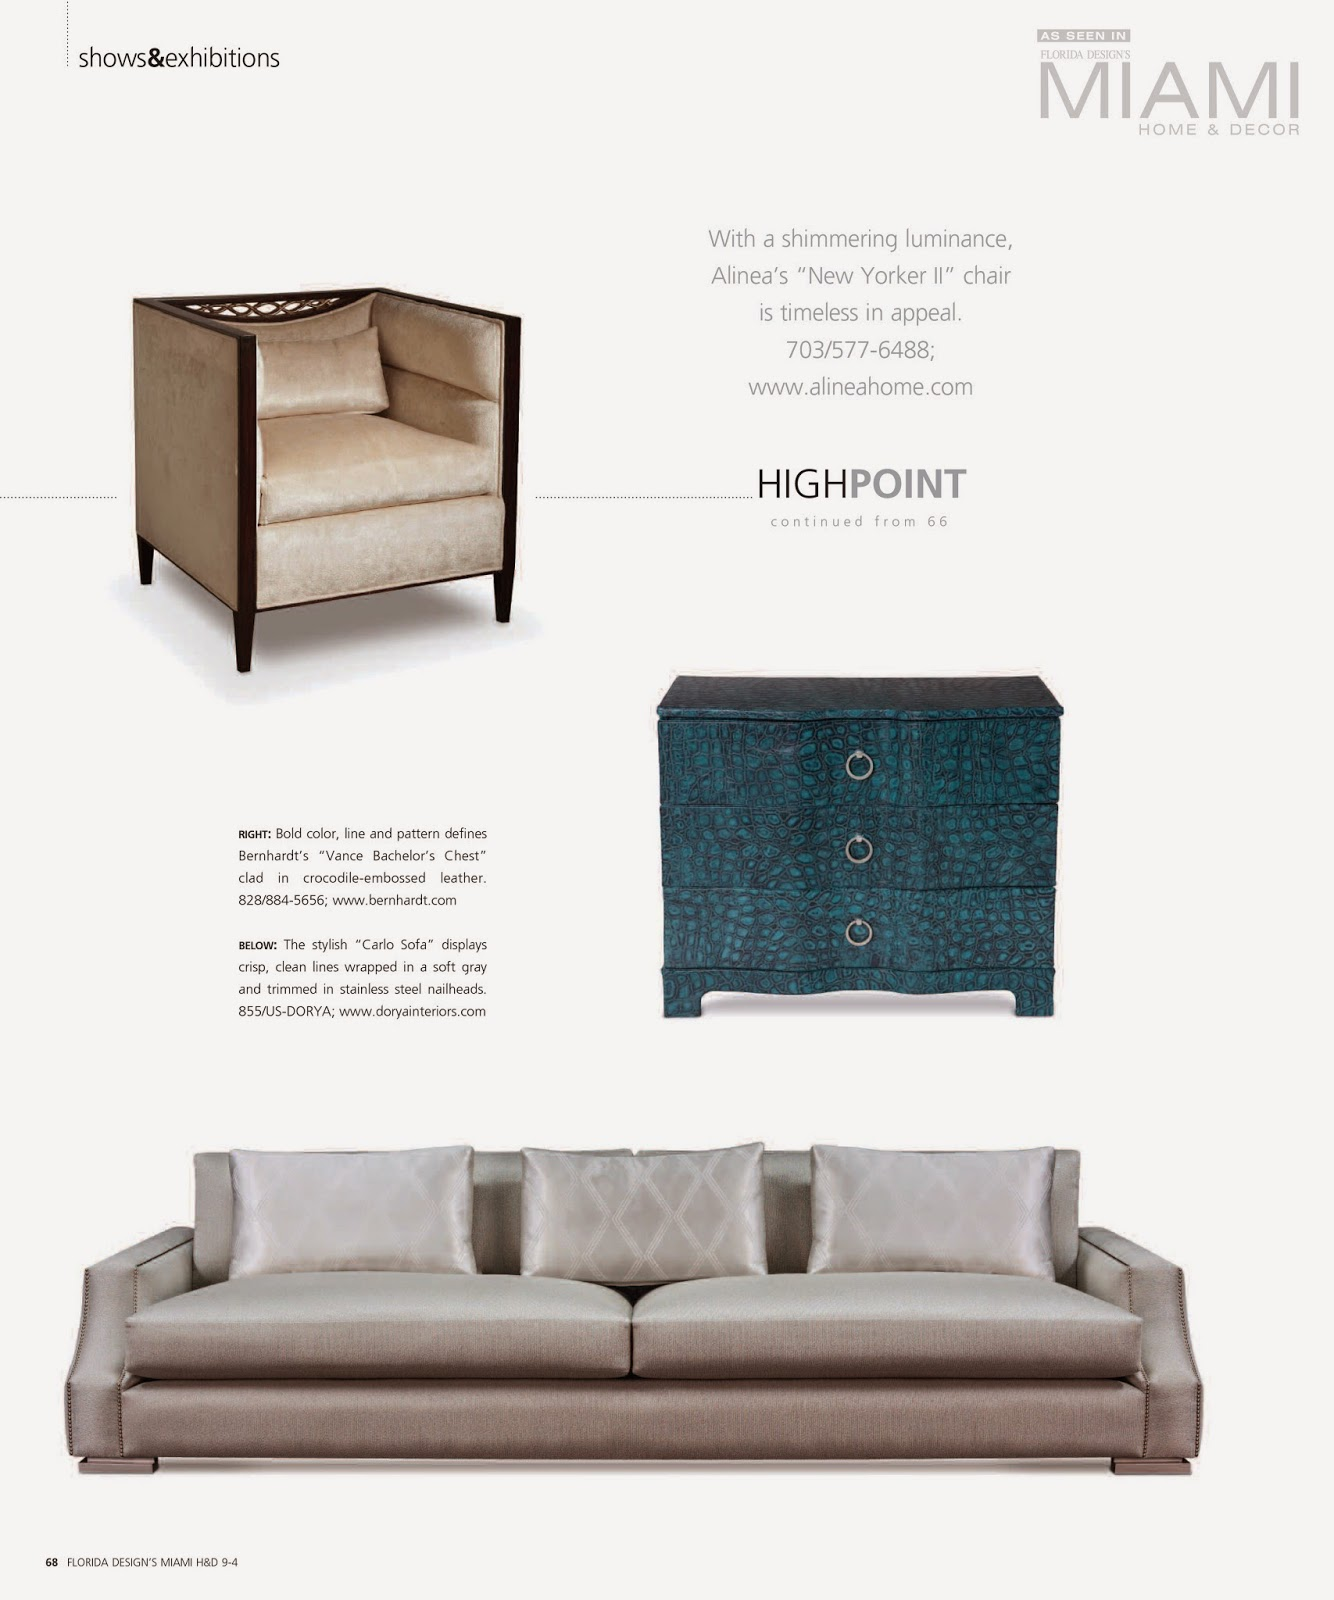 Dorya Interiors: Miami Home & Decor Features The Best Of